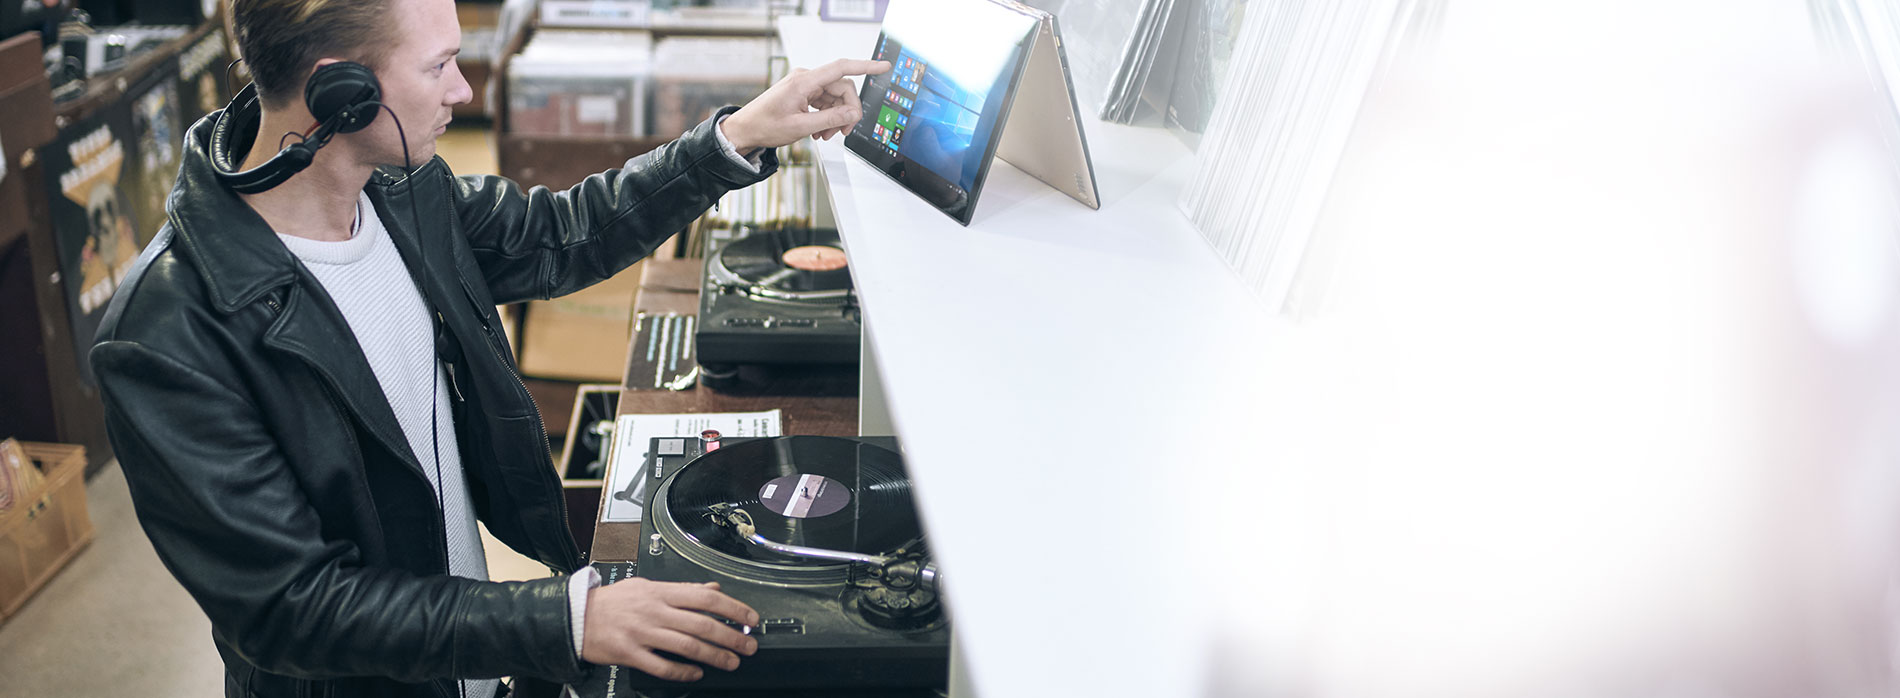 Man wearing headphones playing vinyl records in record store while touching the screen ofa 2-in-one device placed on a shelf at eye level